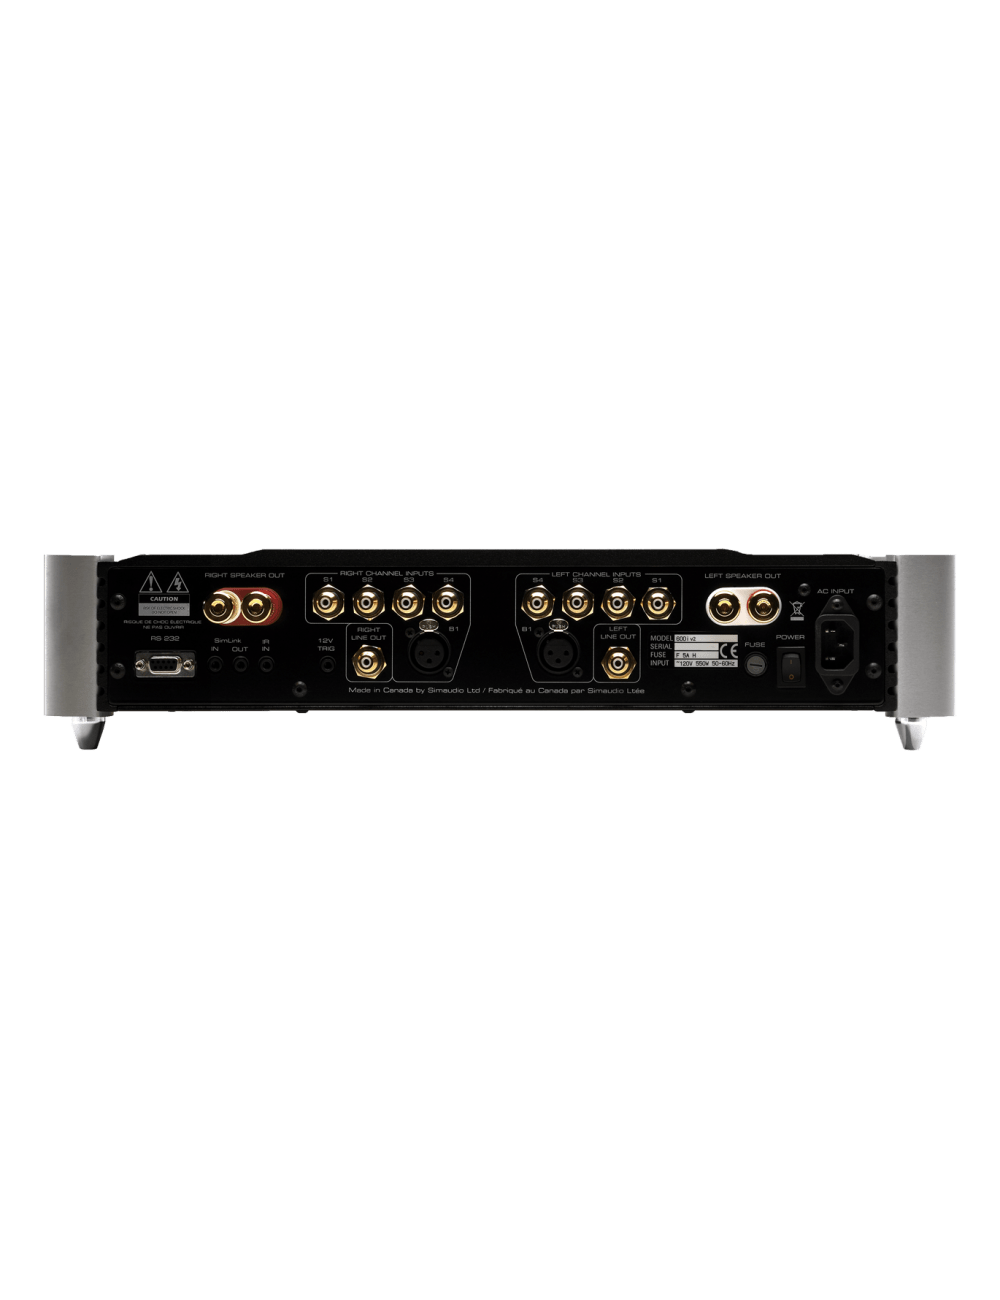 amplificatore integrato stereofonico HiFi High End Simaudio Moon 600i, finitura black, pannello connessioni